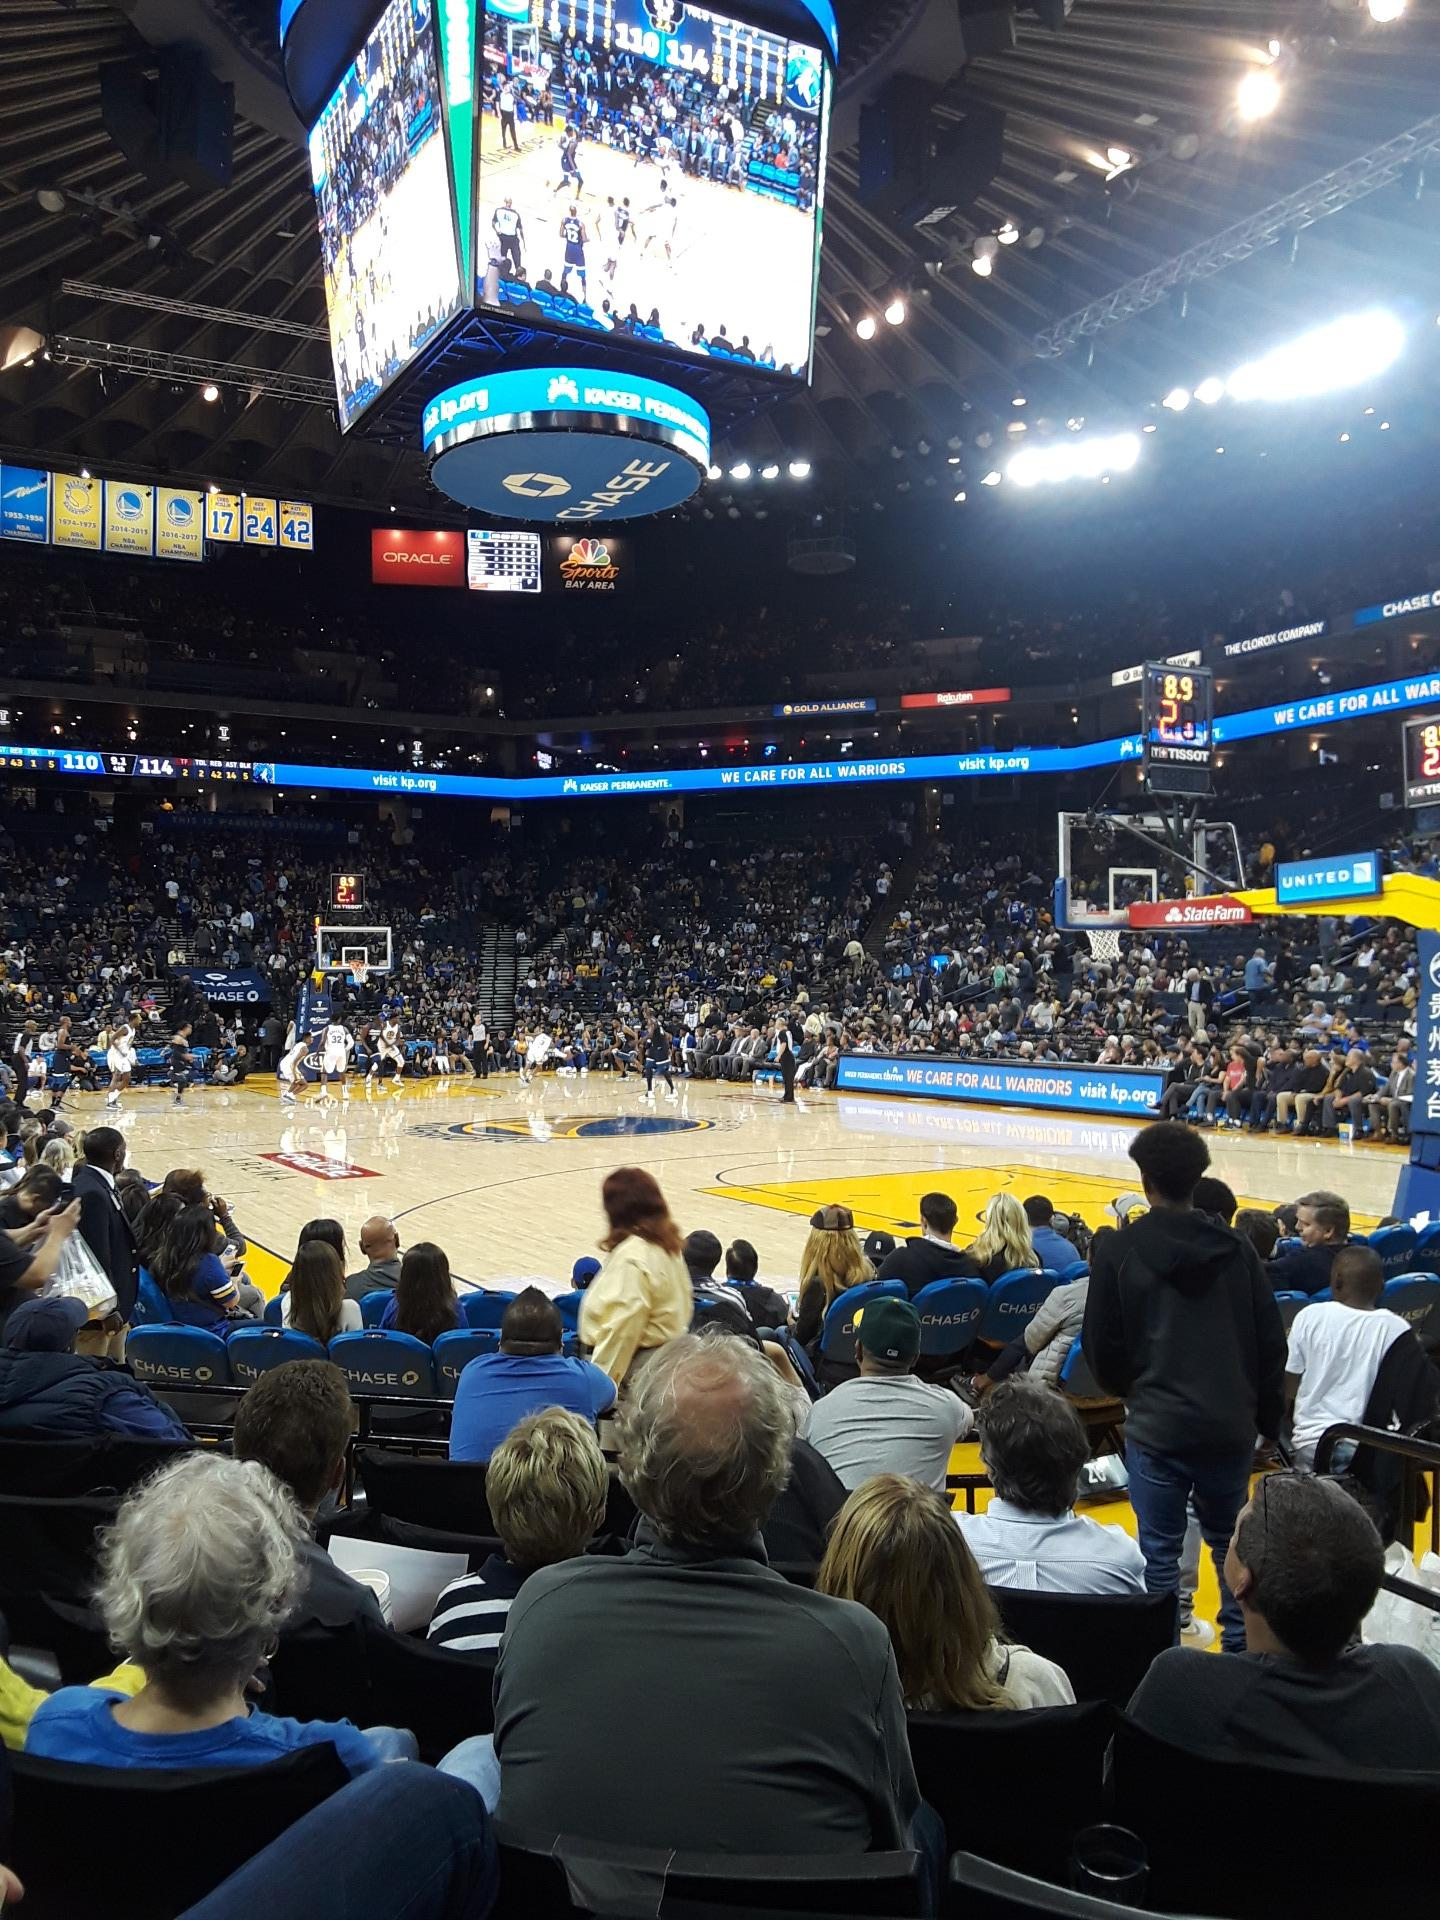 Oakland Arena Section 110 Row 1 Seat 3 Golden State Warriors Vs